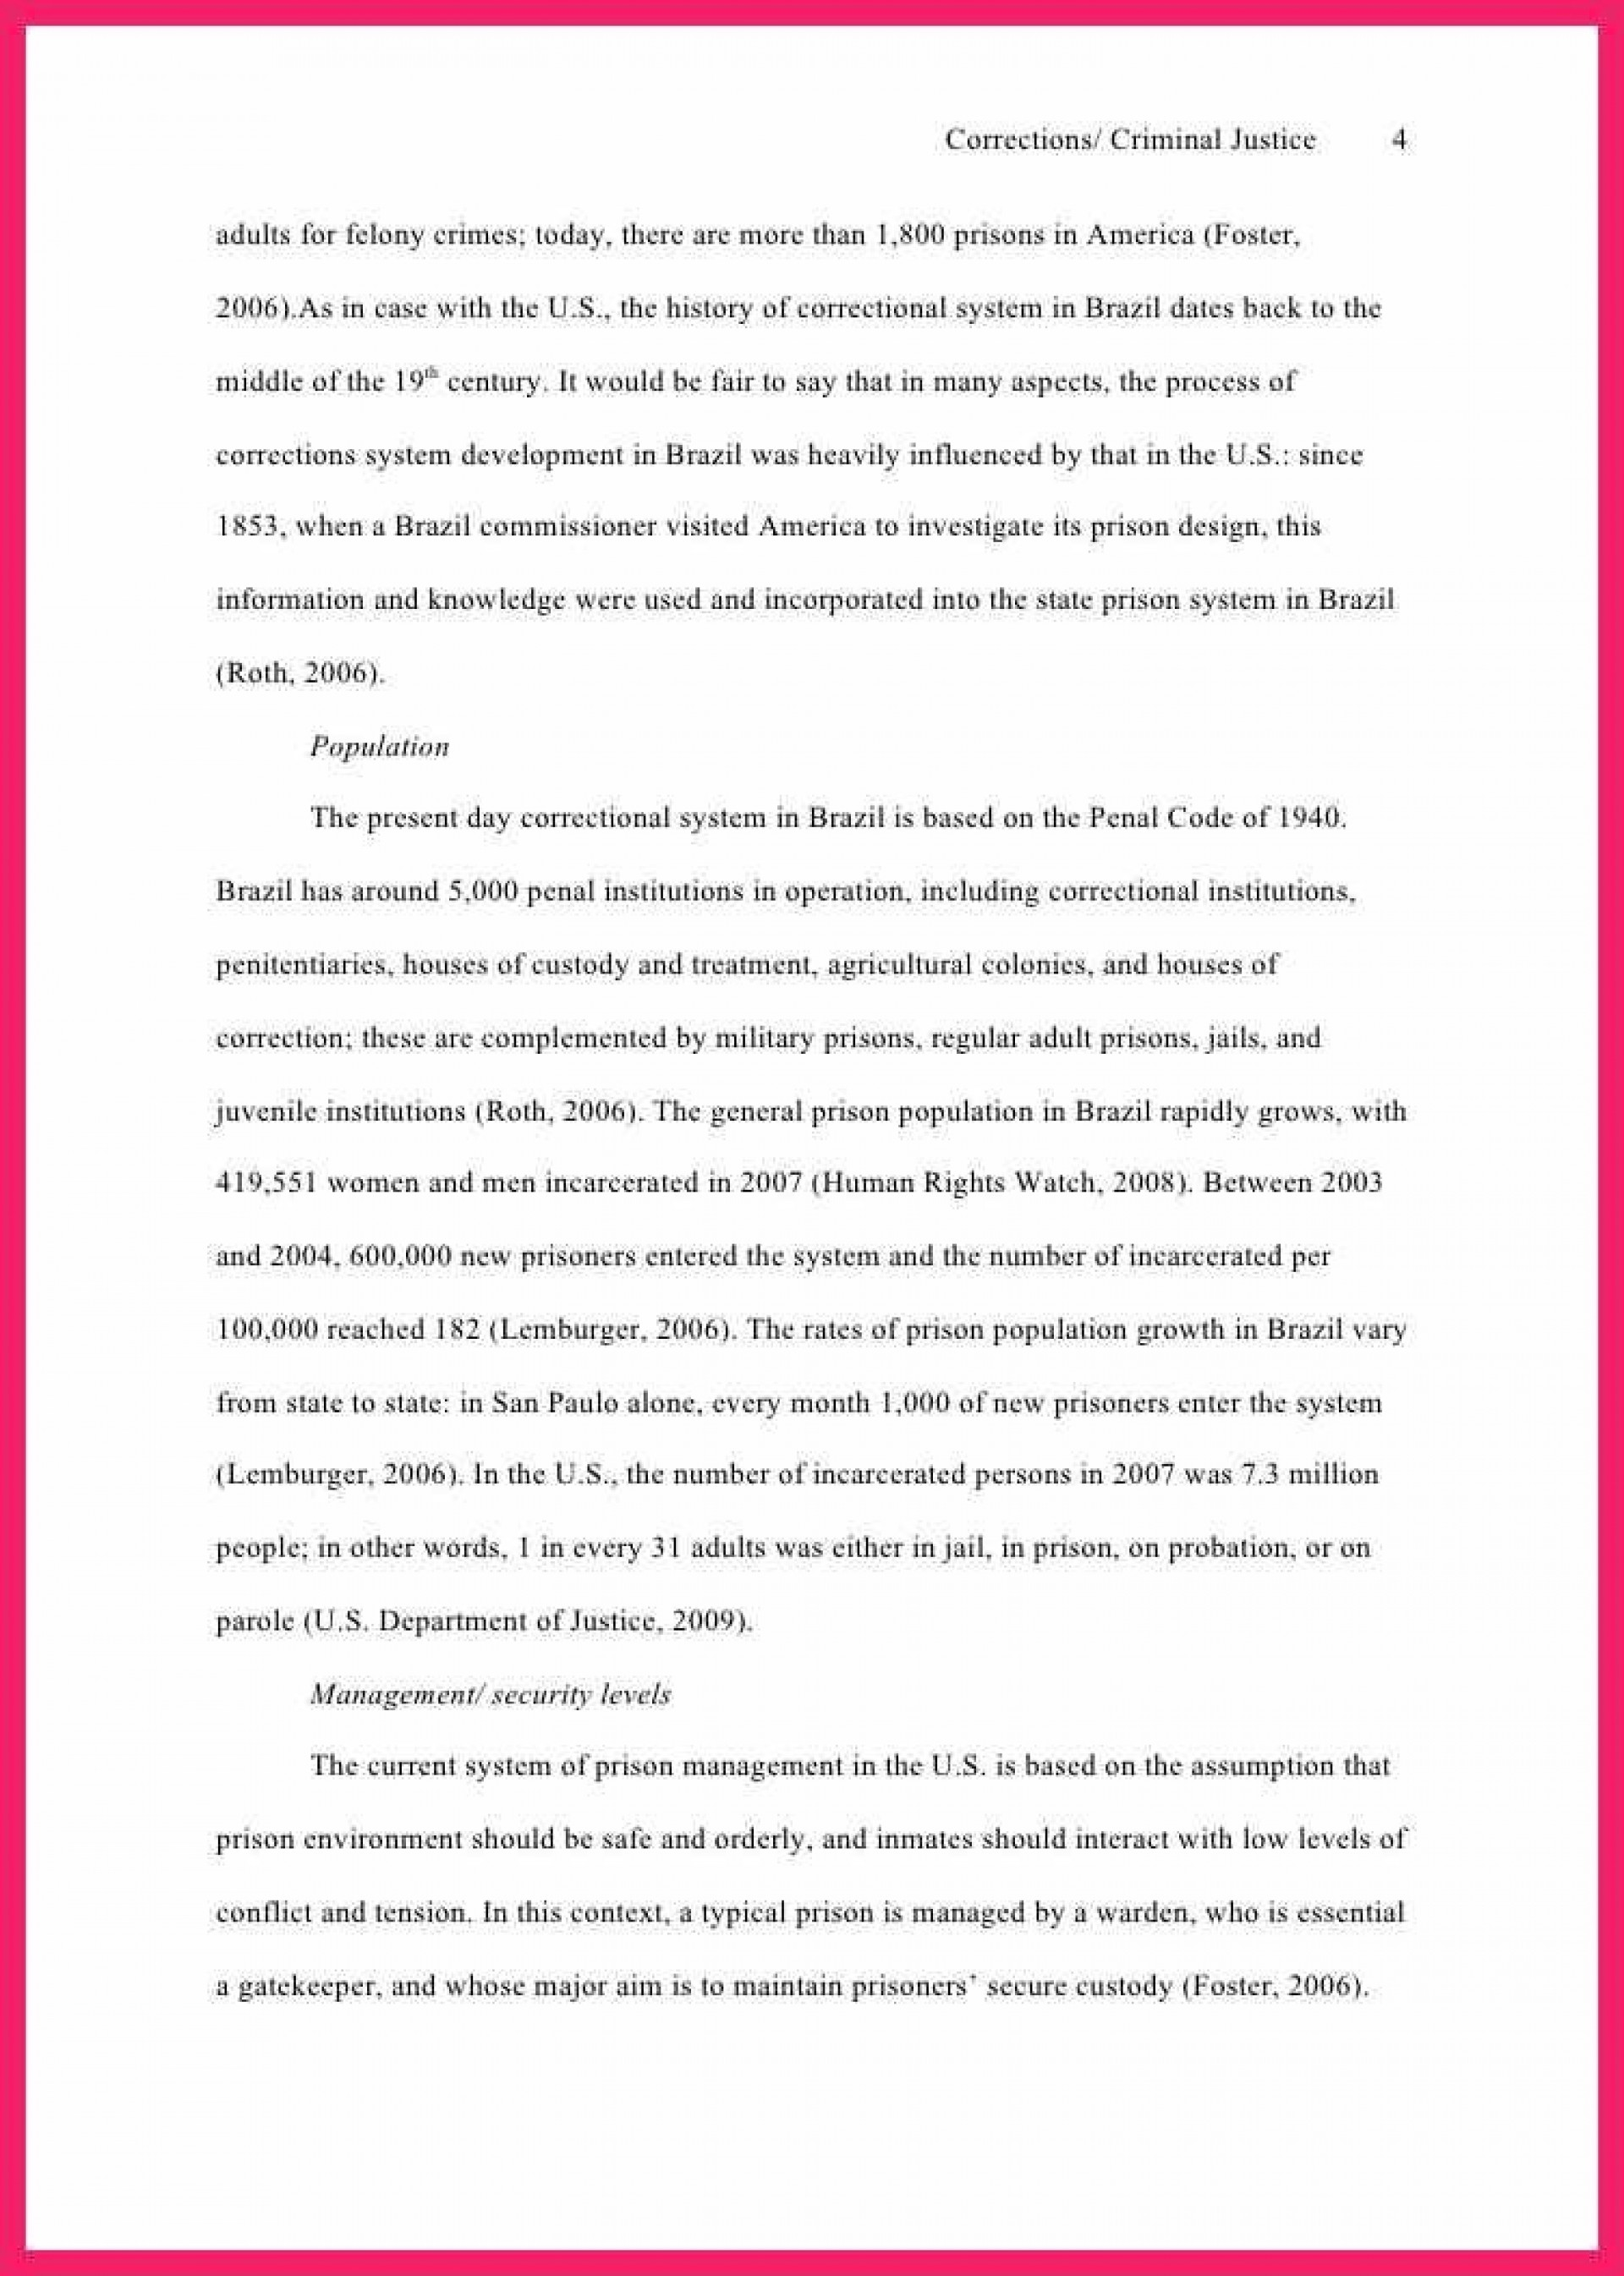 020 Research Paper Ap Style Sample Apa Format Perfectessaynet Formidable 6 Owl Example 2013 1920